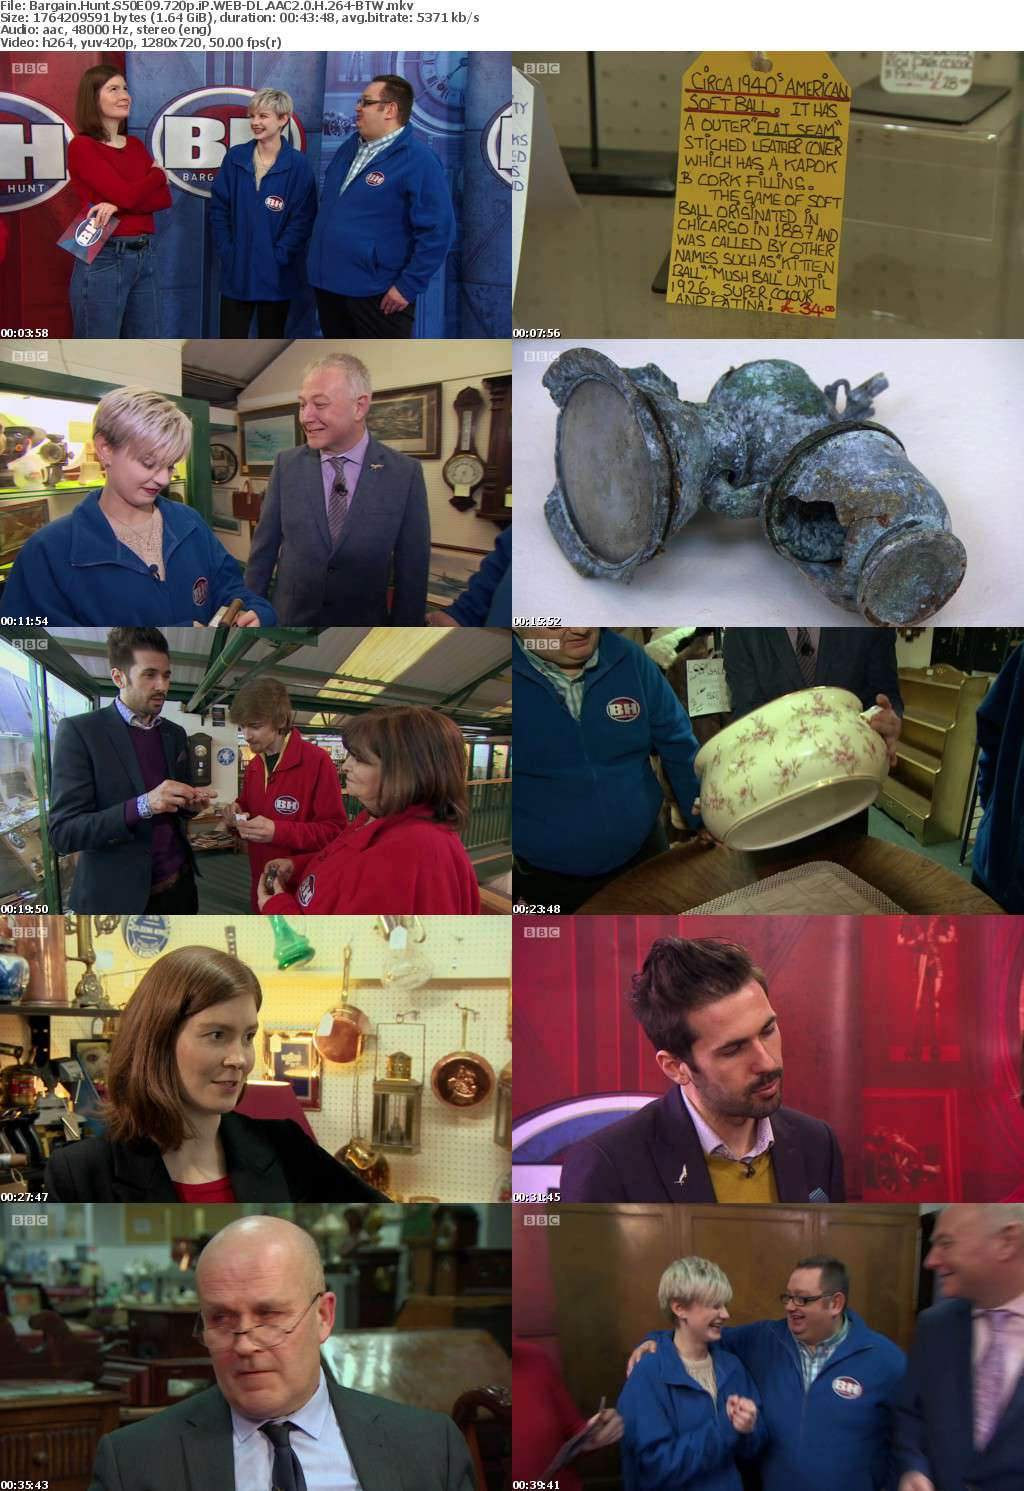 Bargain Hunt S50E09 720p iP WEB-DL AAC2 0 H 264-BTW